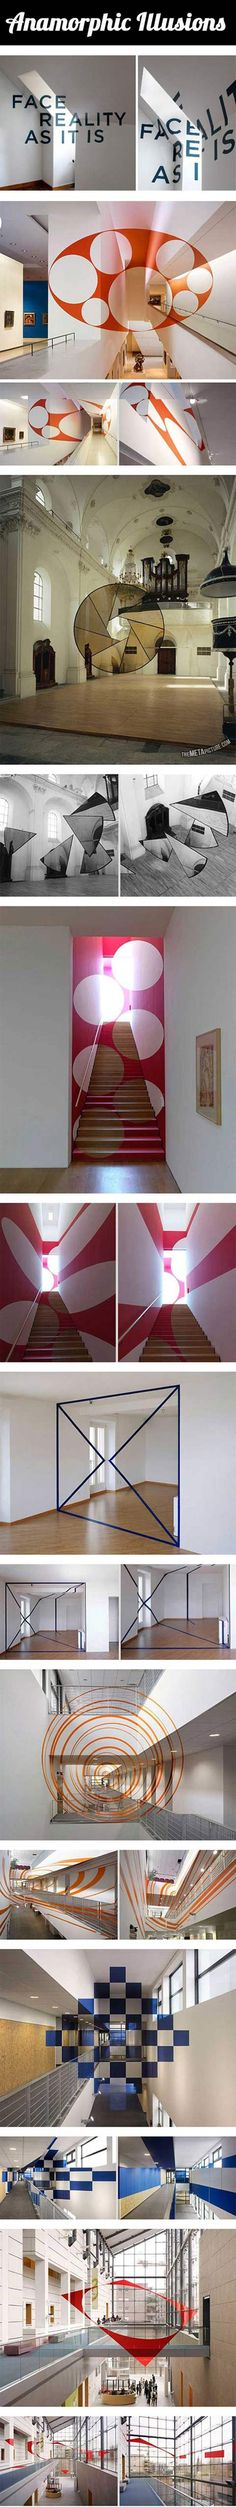 We have rounded up a batch of anamorphic 3D illusions that may blow your mind.